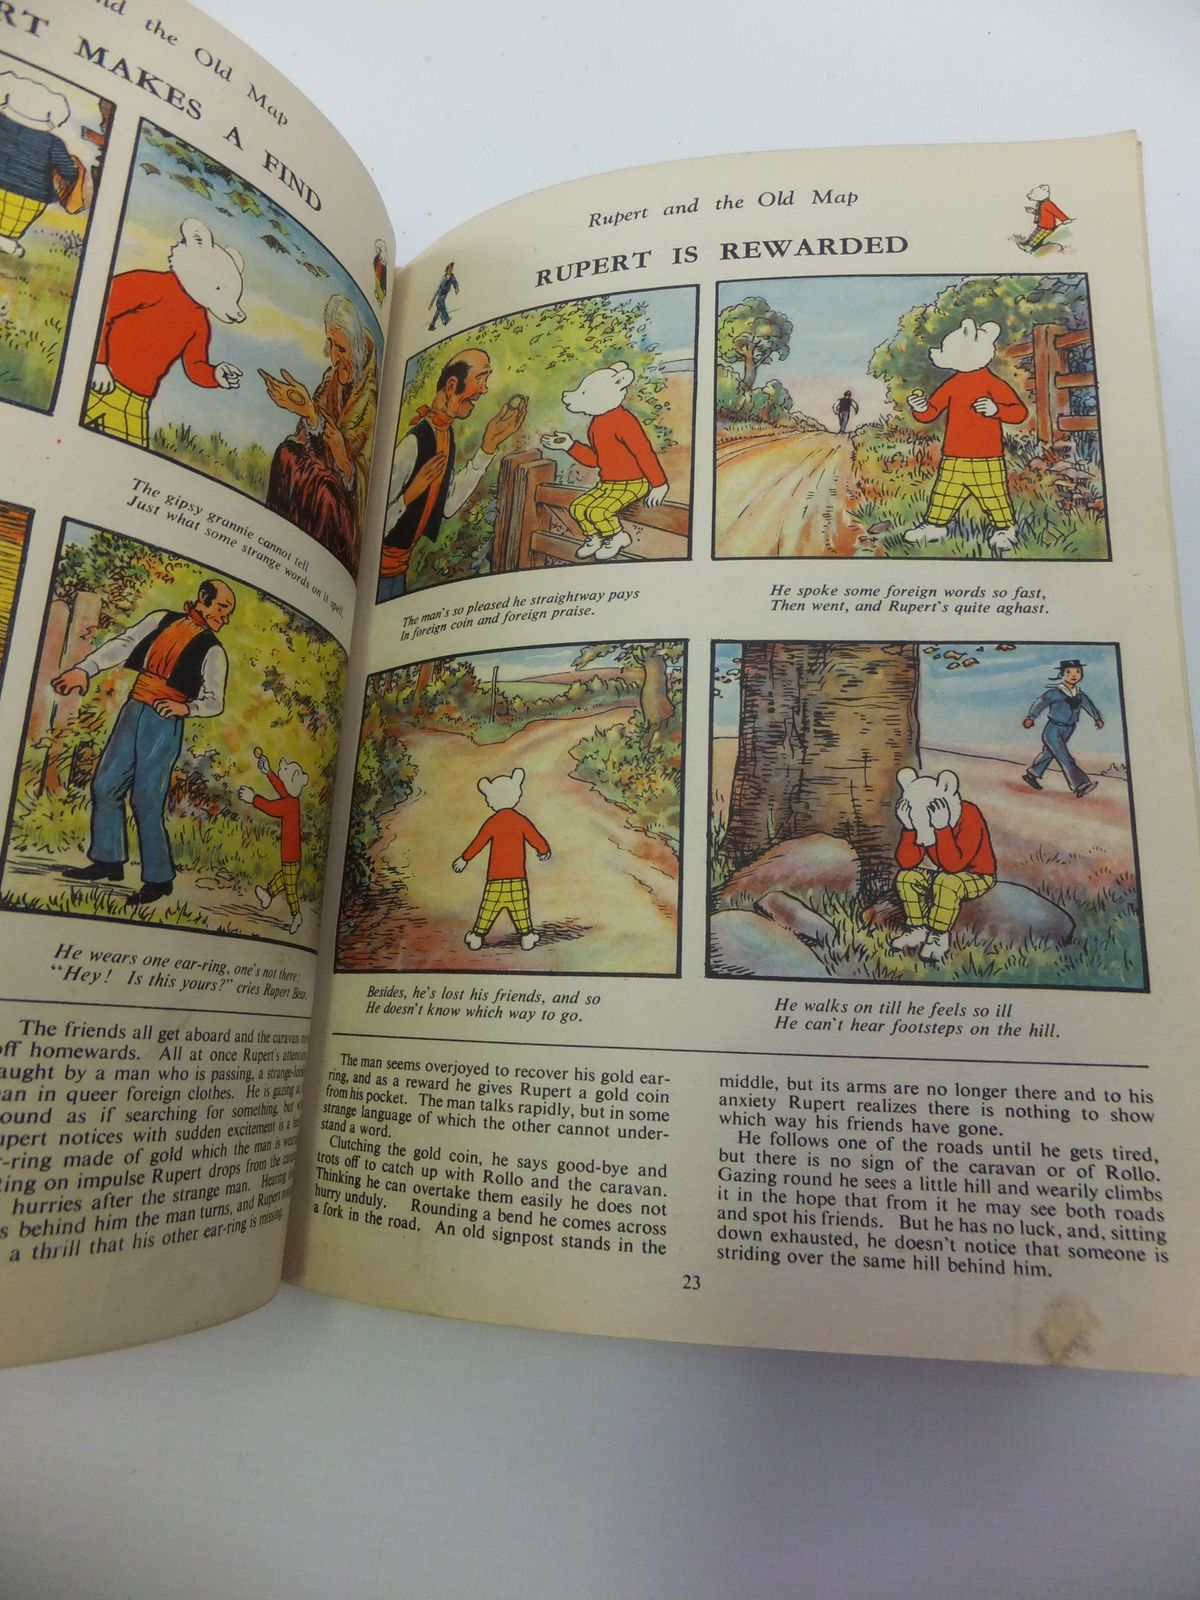 Photo of RUPERT ANNUAL 1944 - RUPERT IN MORE ADVENTURES written by Bestall, Alfred illustrated by Bestall, Alfred published by Daily Express (STOCK CODE: 1812264)  for sale by Stella & Rose's Books